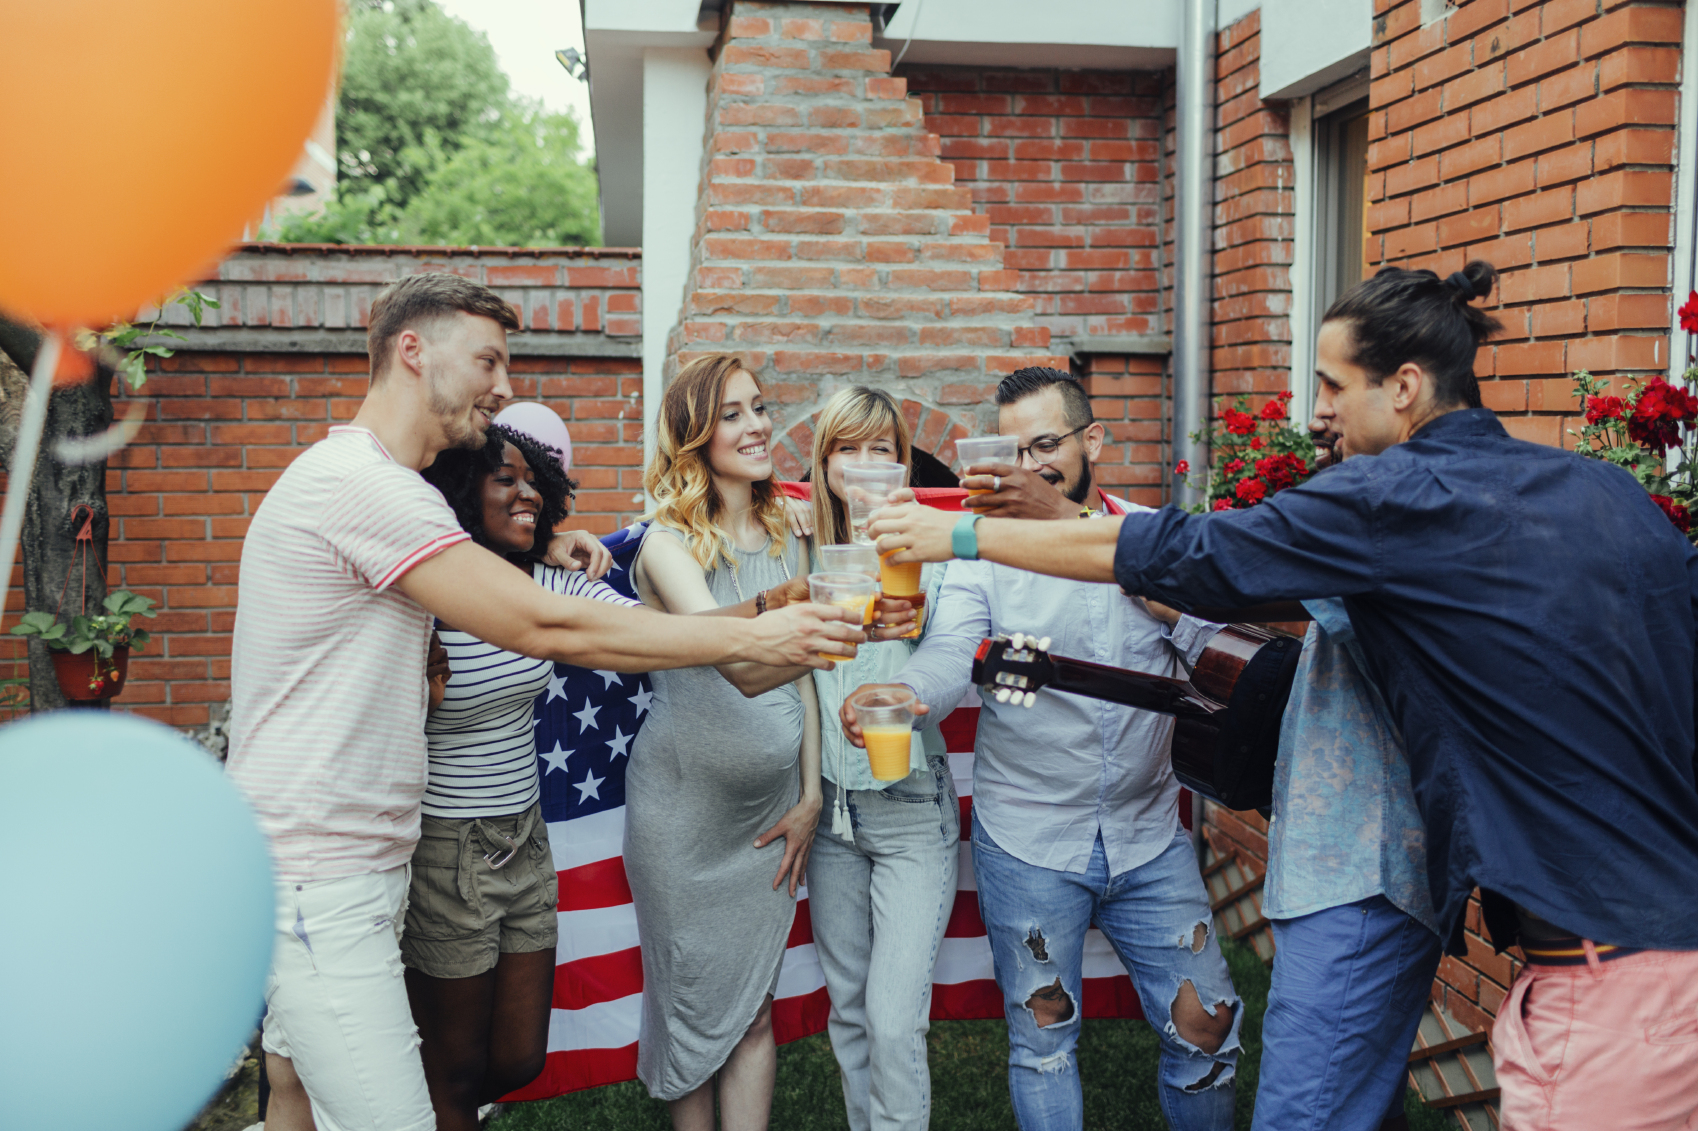 7 Tips For Hosting an Epic Memorial Day BBQ